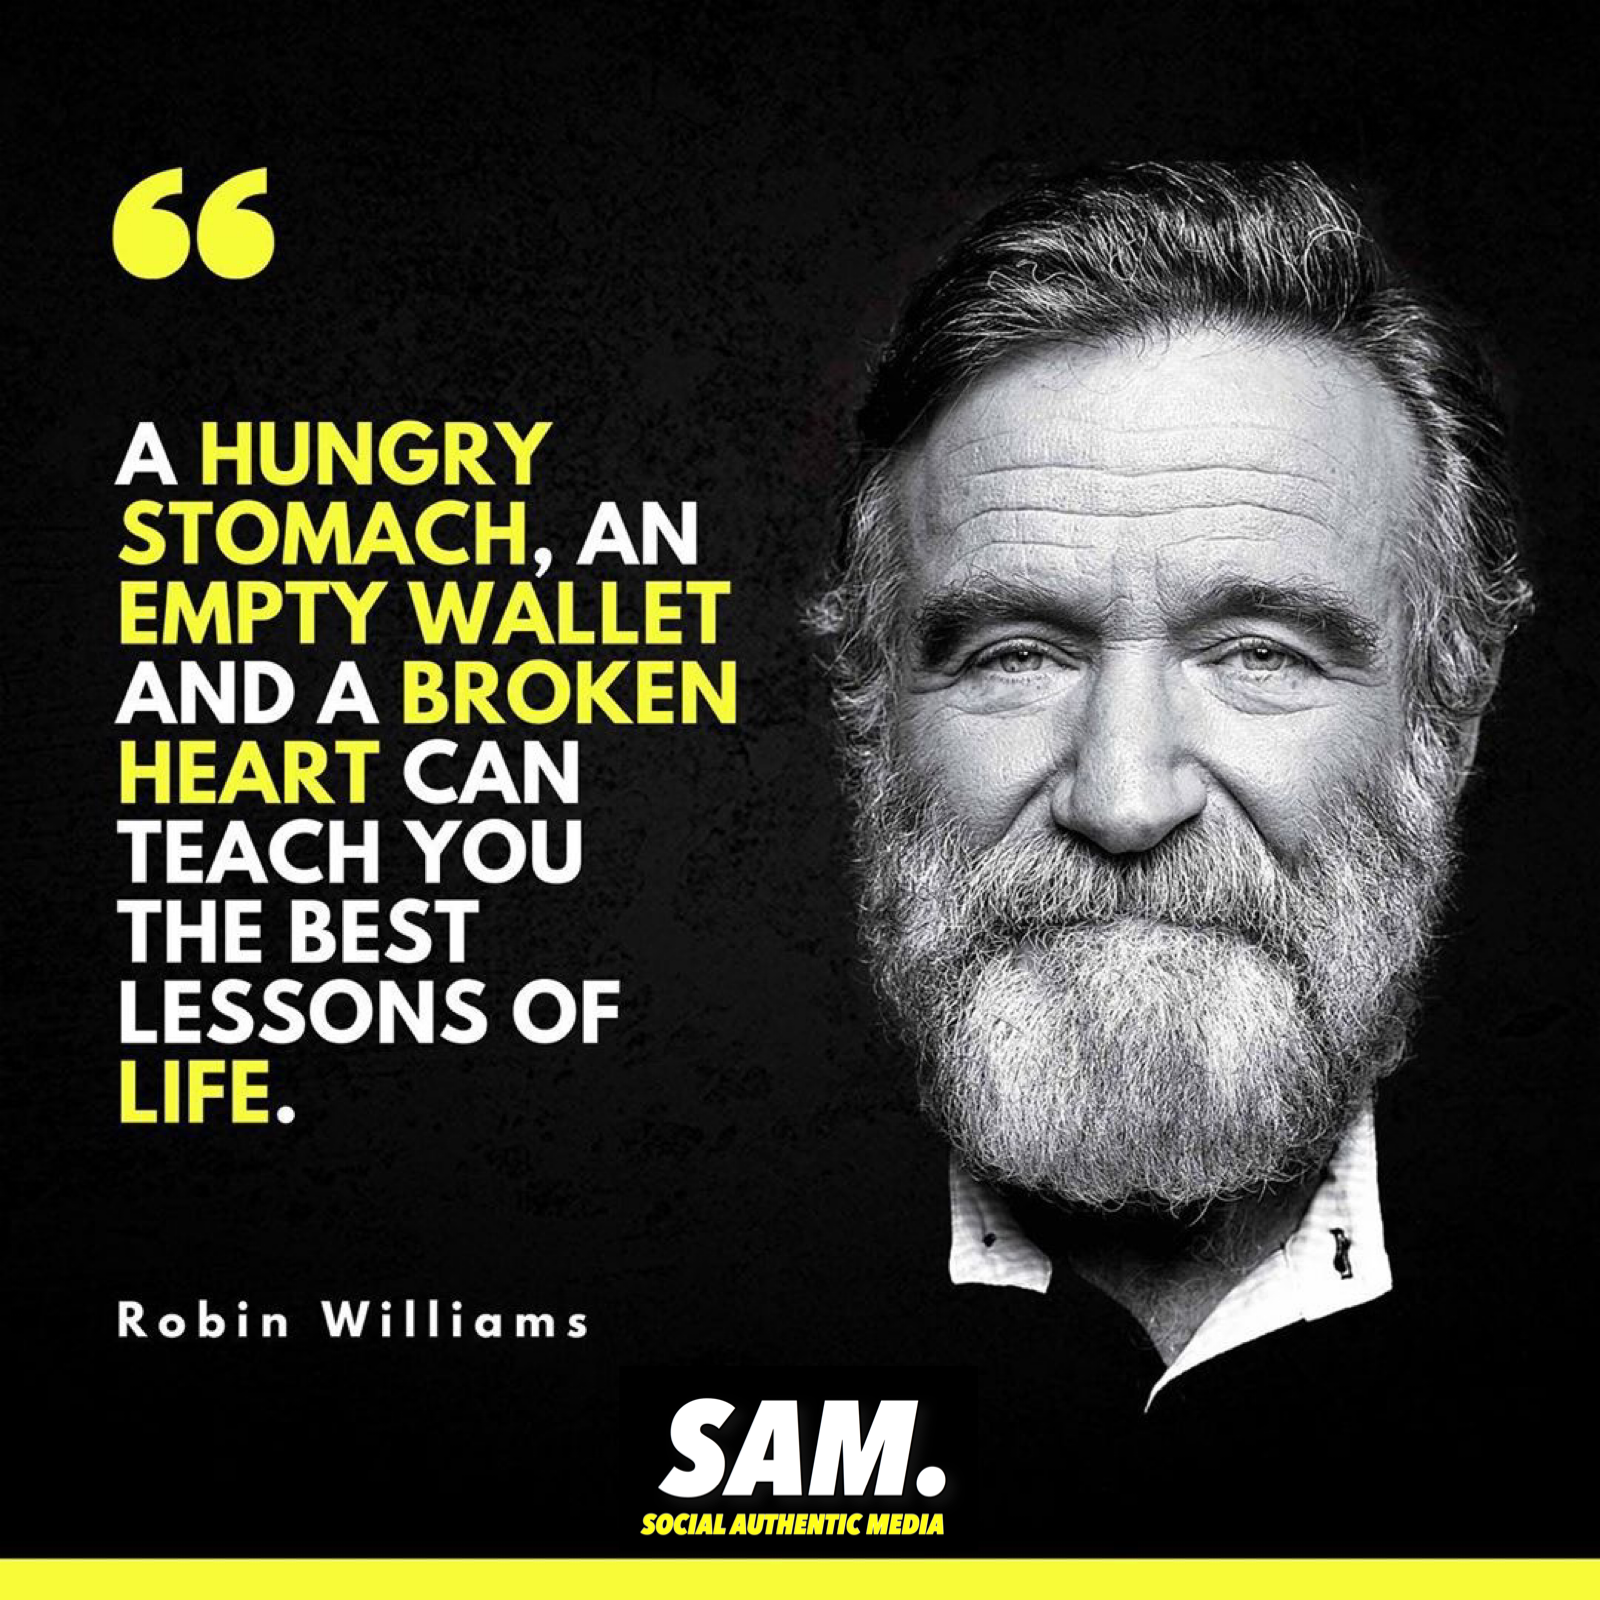 A Robin Williams quote that has been very relatable for me